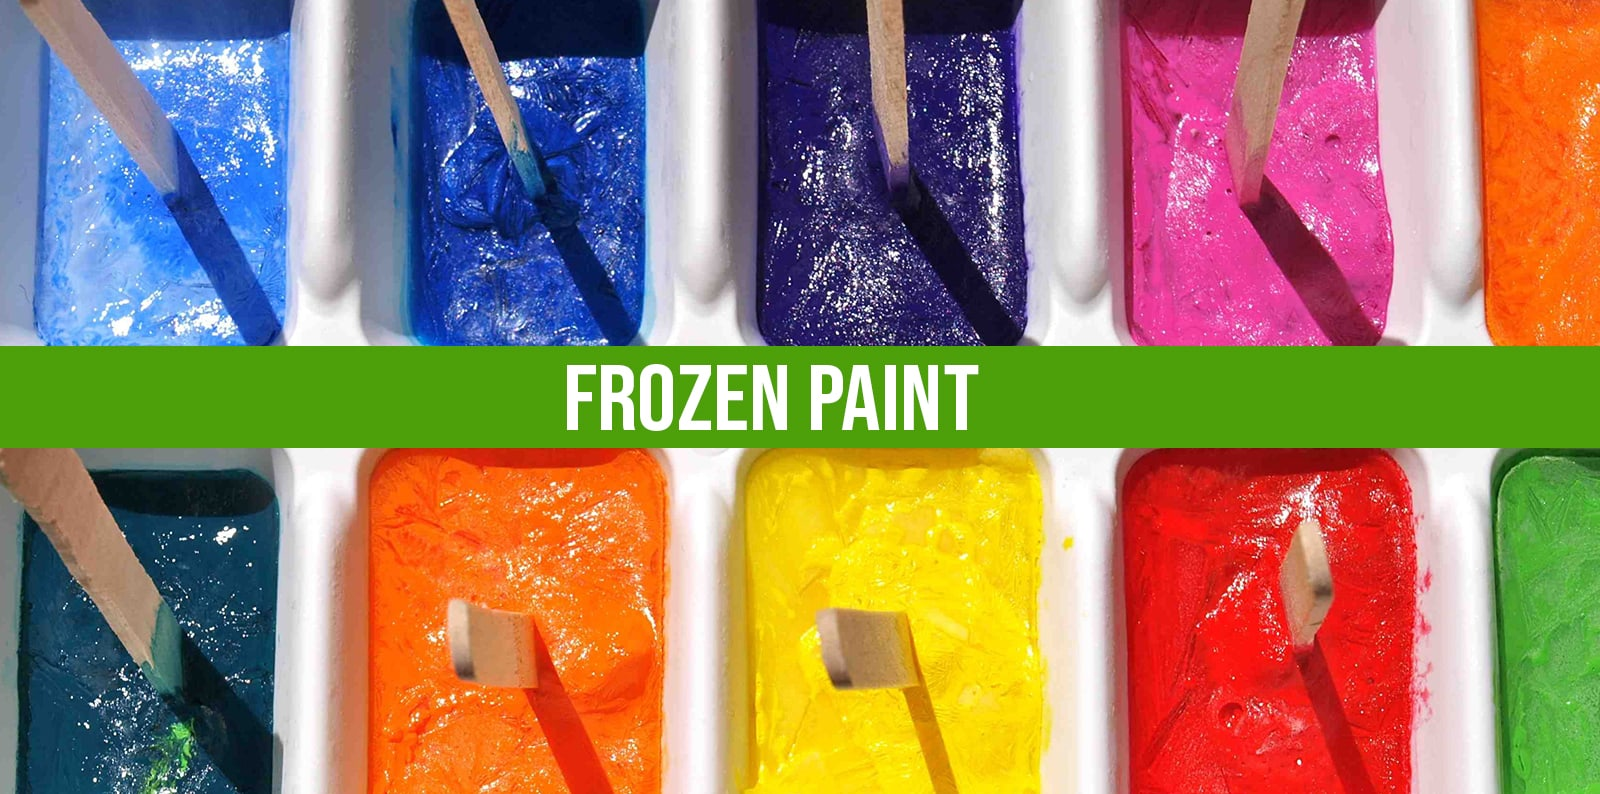 FROZEN PAINT